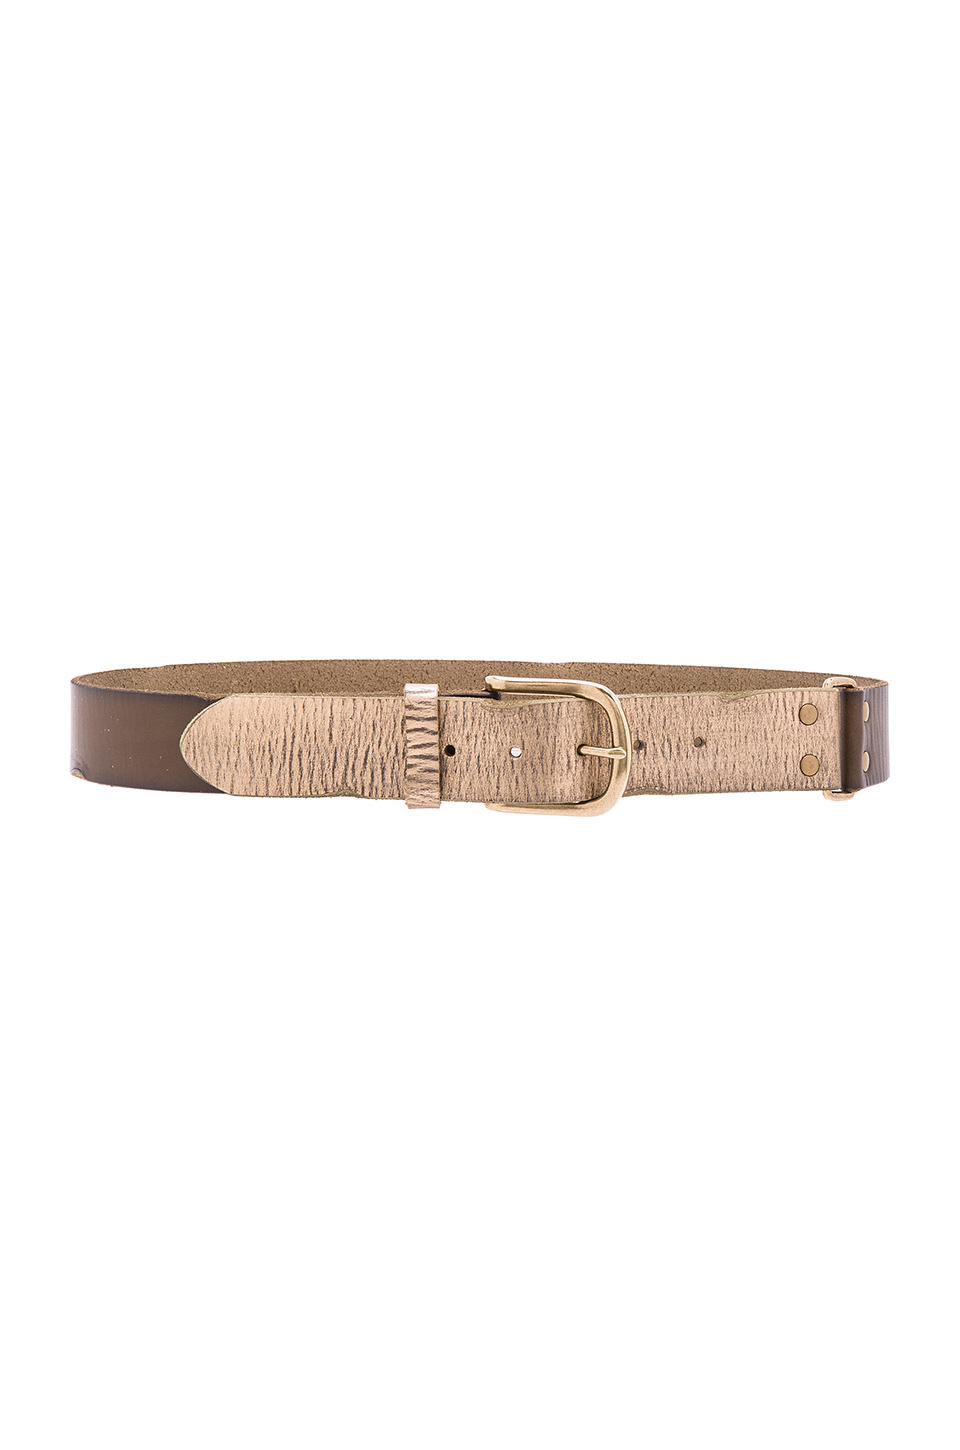 Linea Pelle Color Block Hip Belt in Olive & Gold